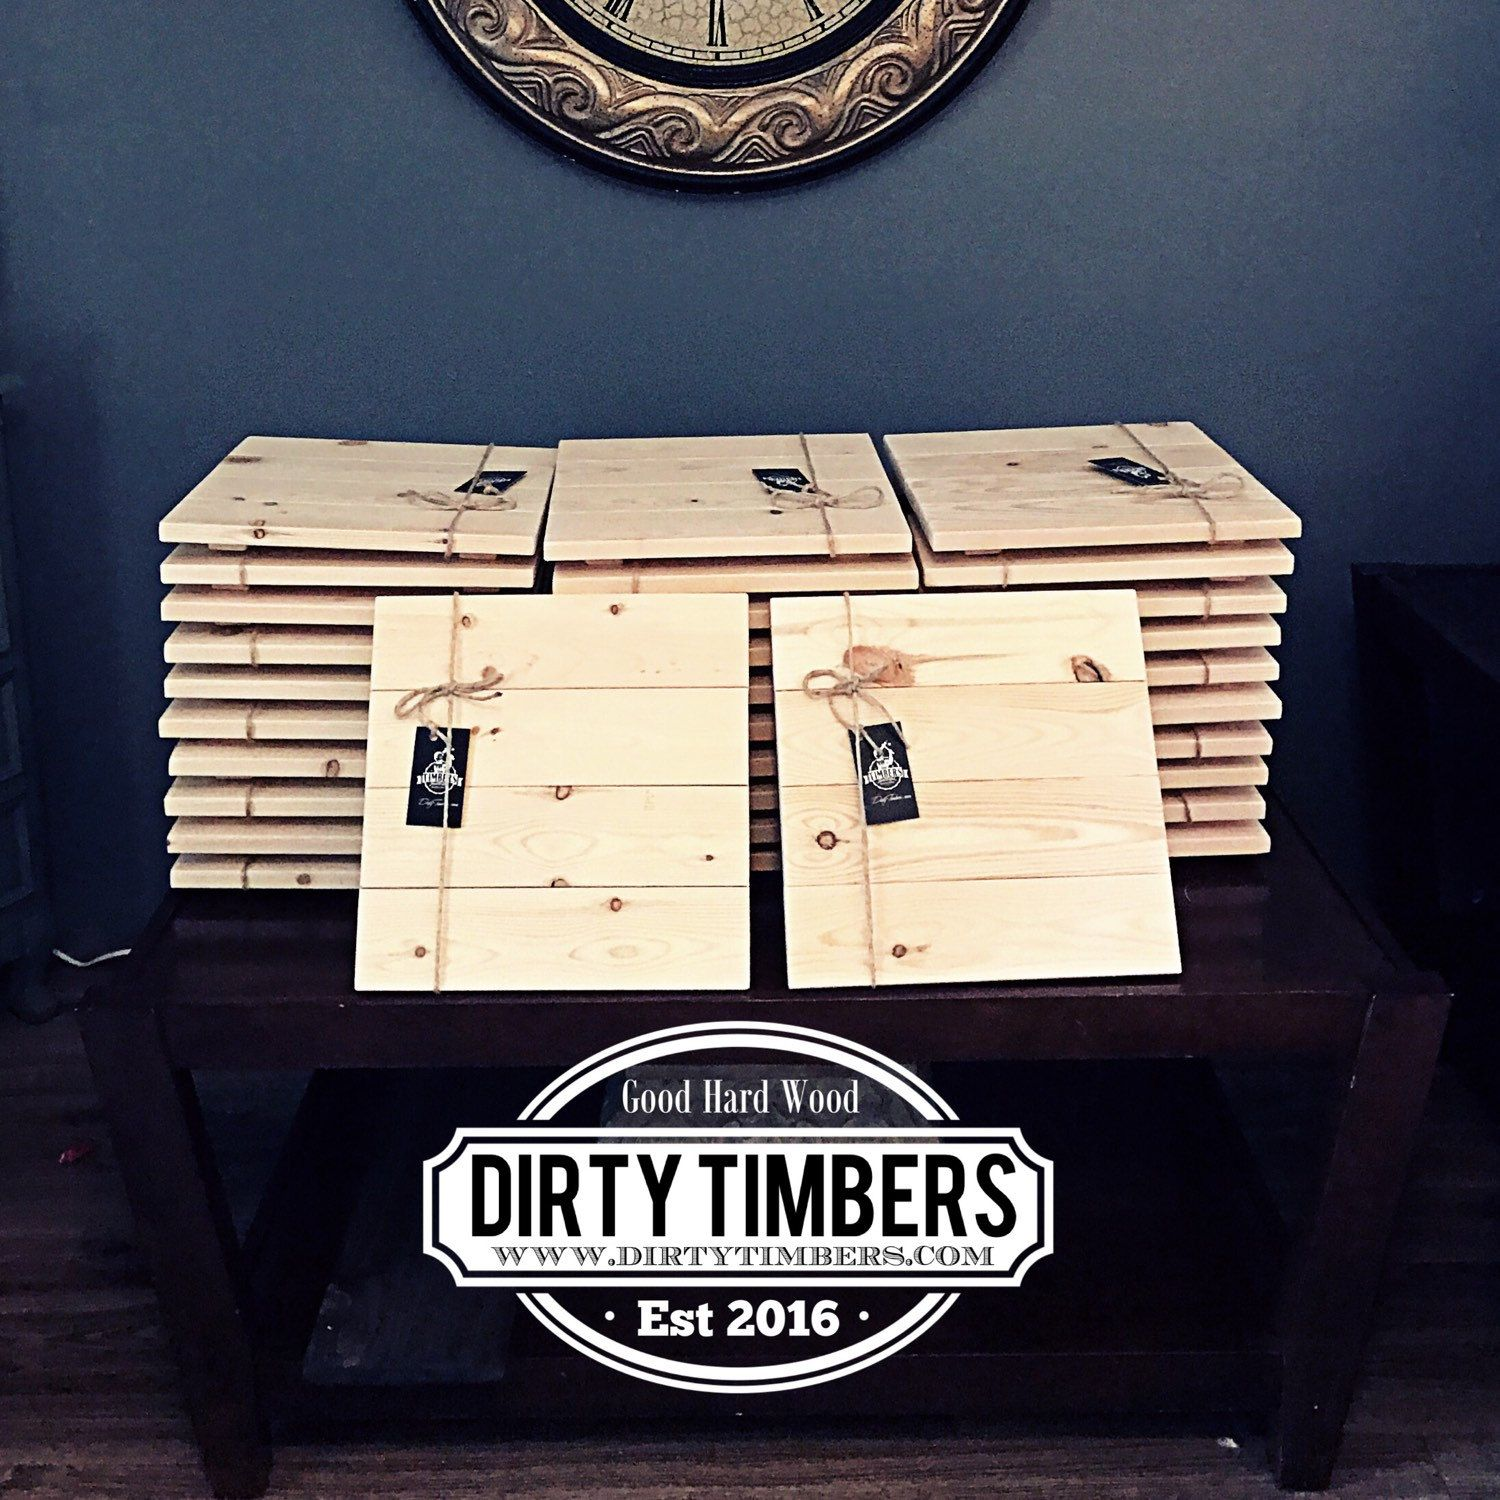 Dirtytimbers Shared A New Photo On Etsy